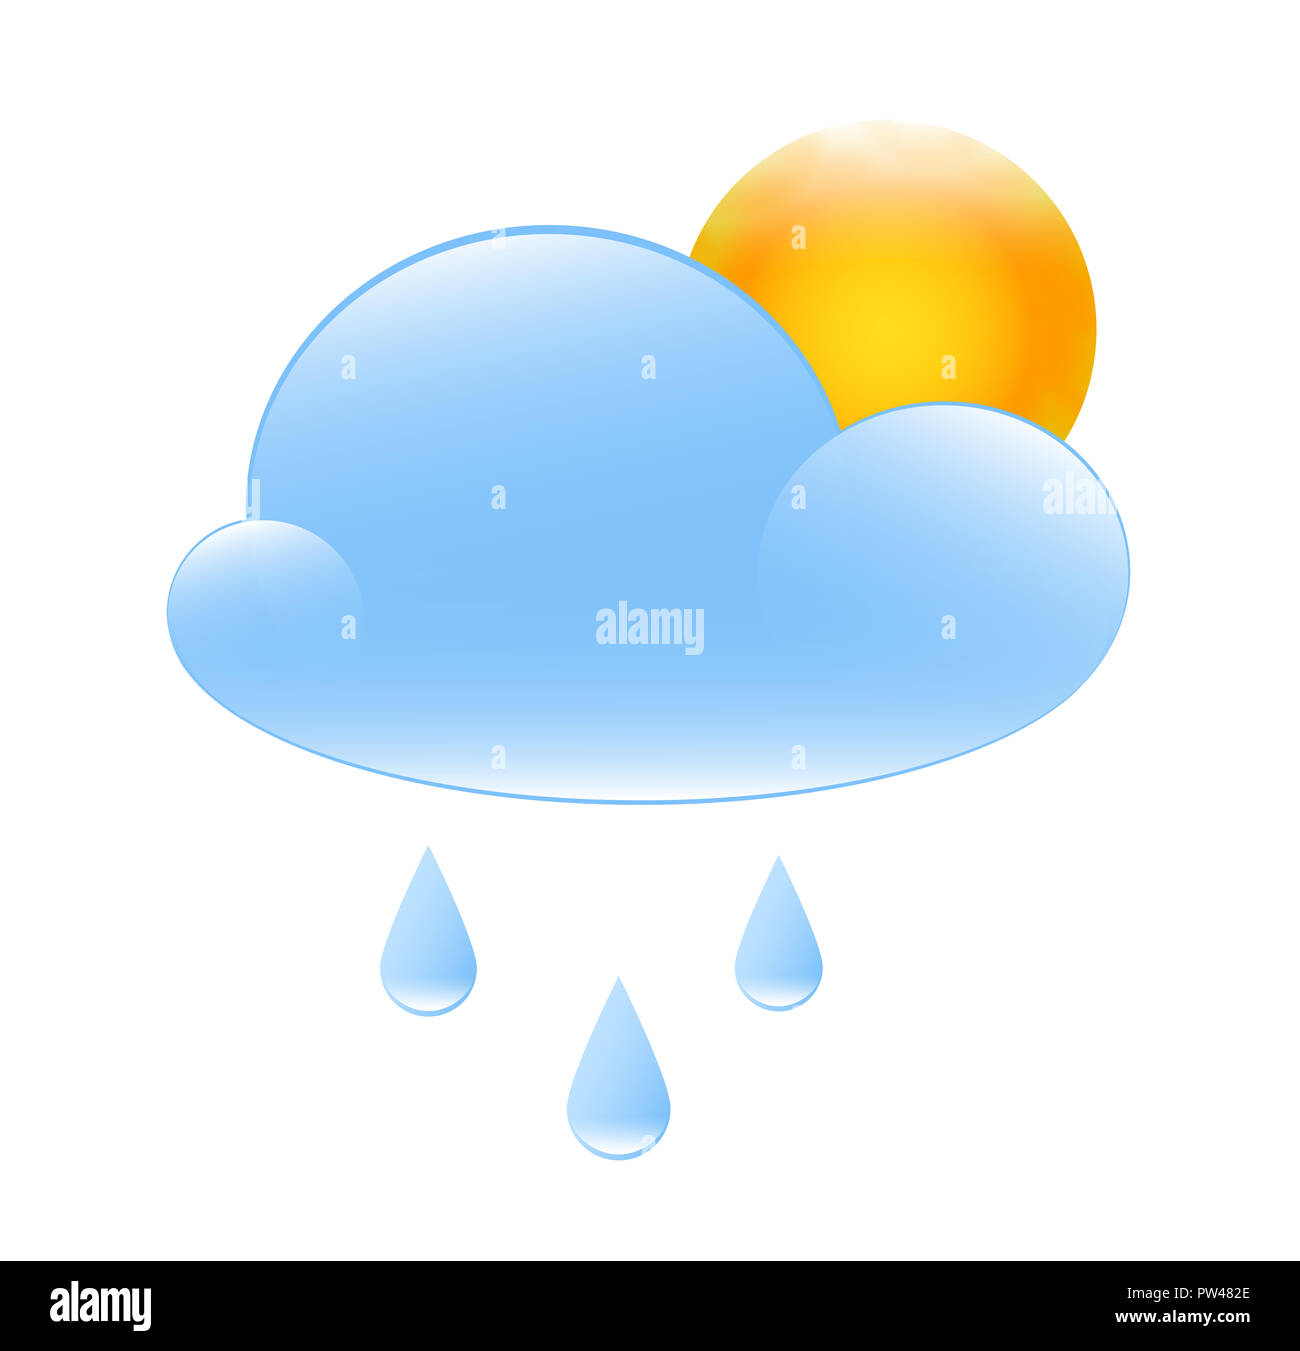 partly cloudy with sun and rain weather illustration - Stock Image